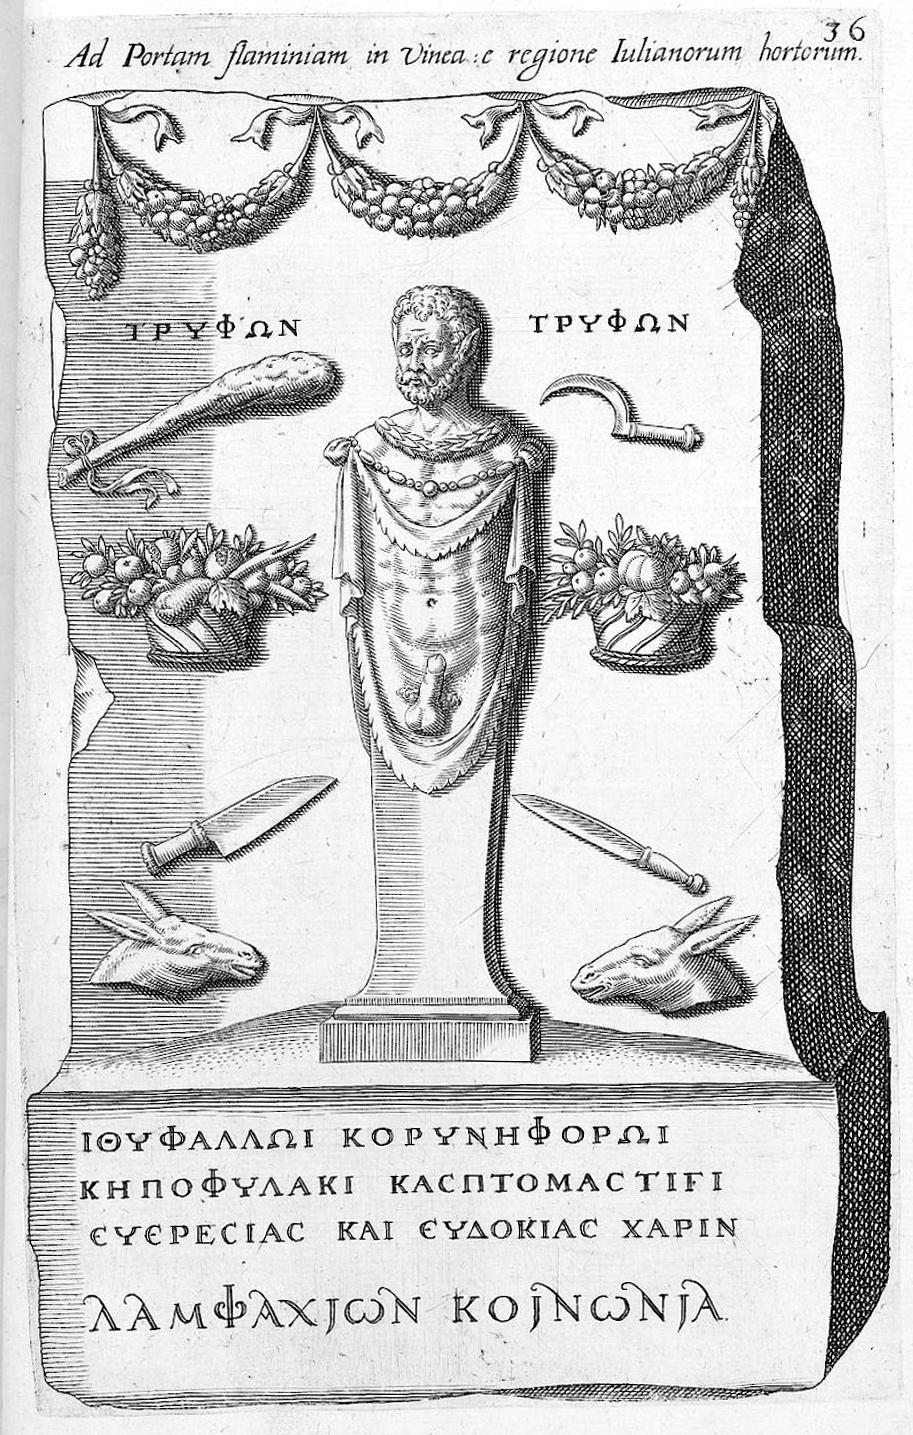 IMT 19: Drawing by Boissard 1602. Public domain. Also reproduced in Gruterus and Graevius 1707, figure corresponding to p. XCV.